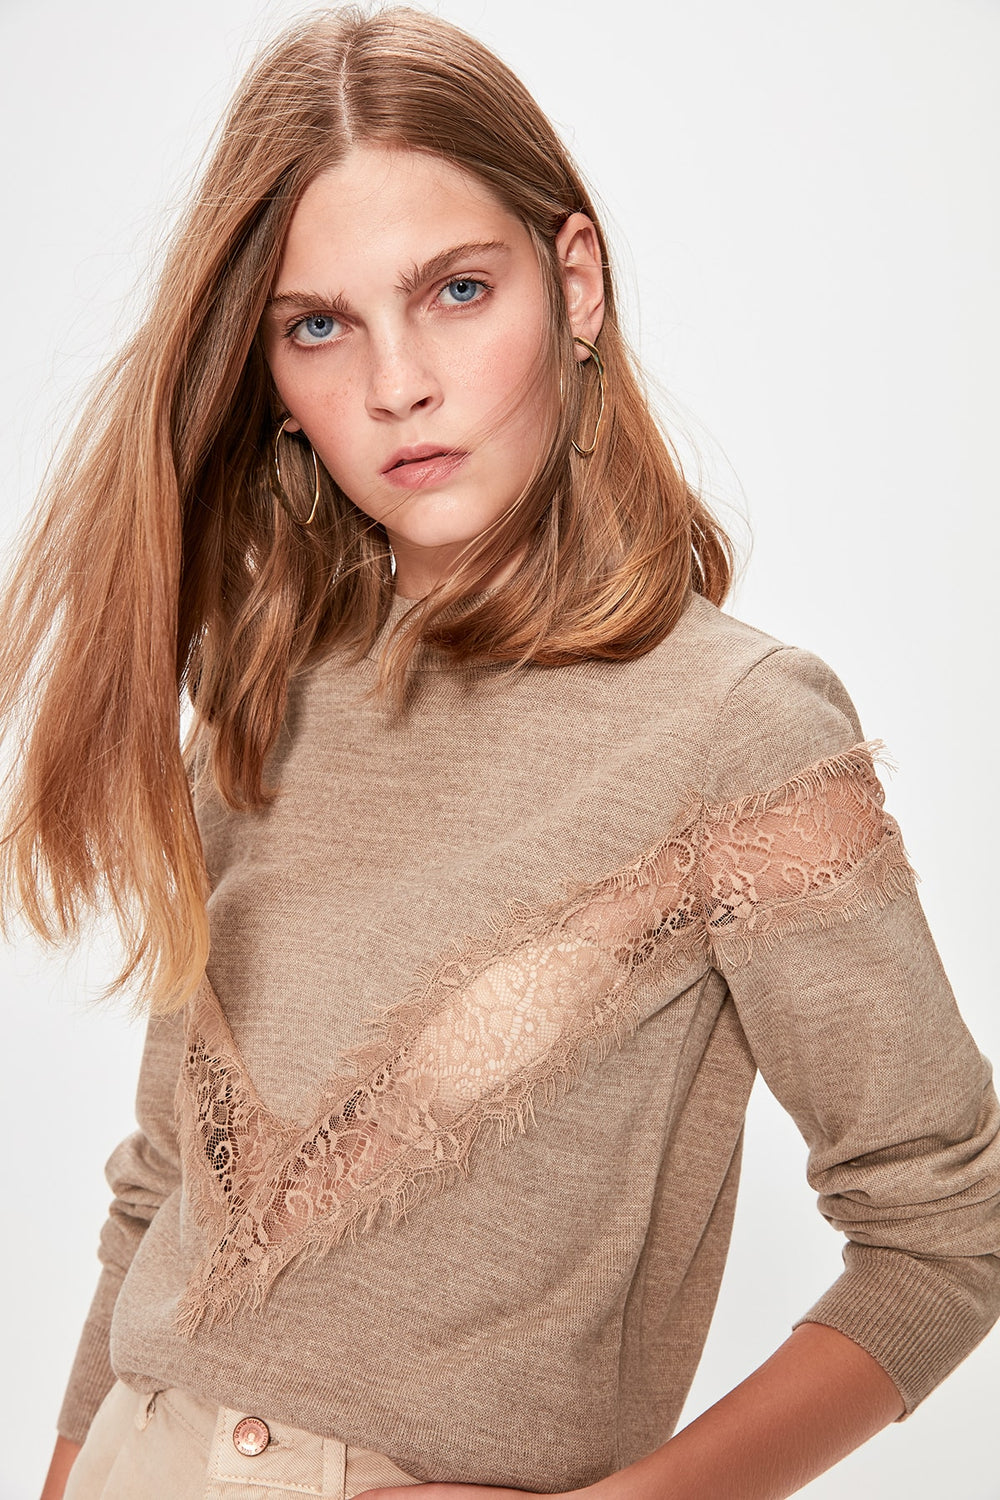 Beige Lace Detail Sweater - Top Maxy